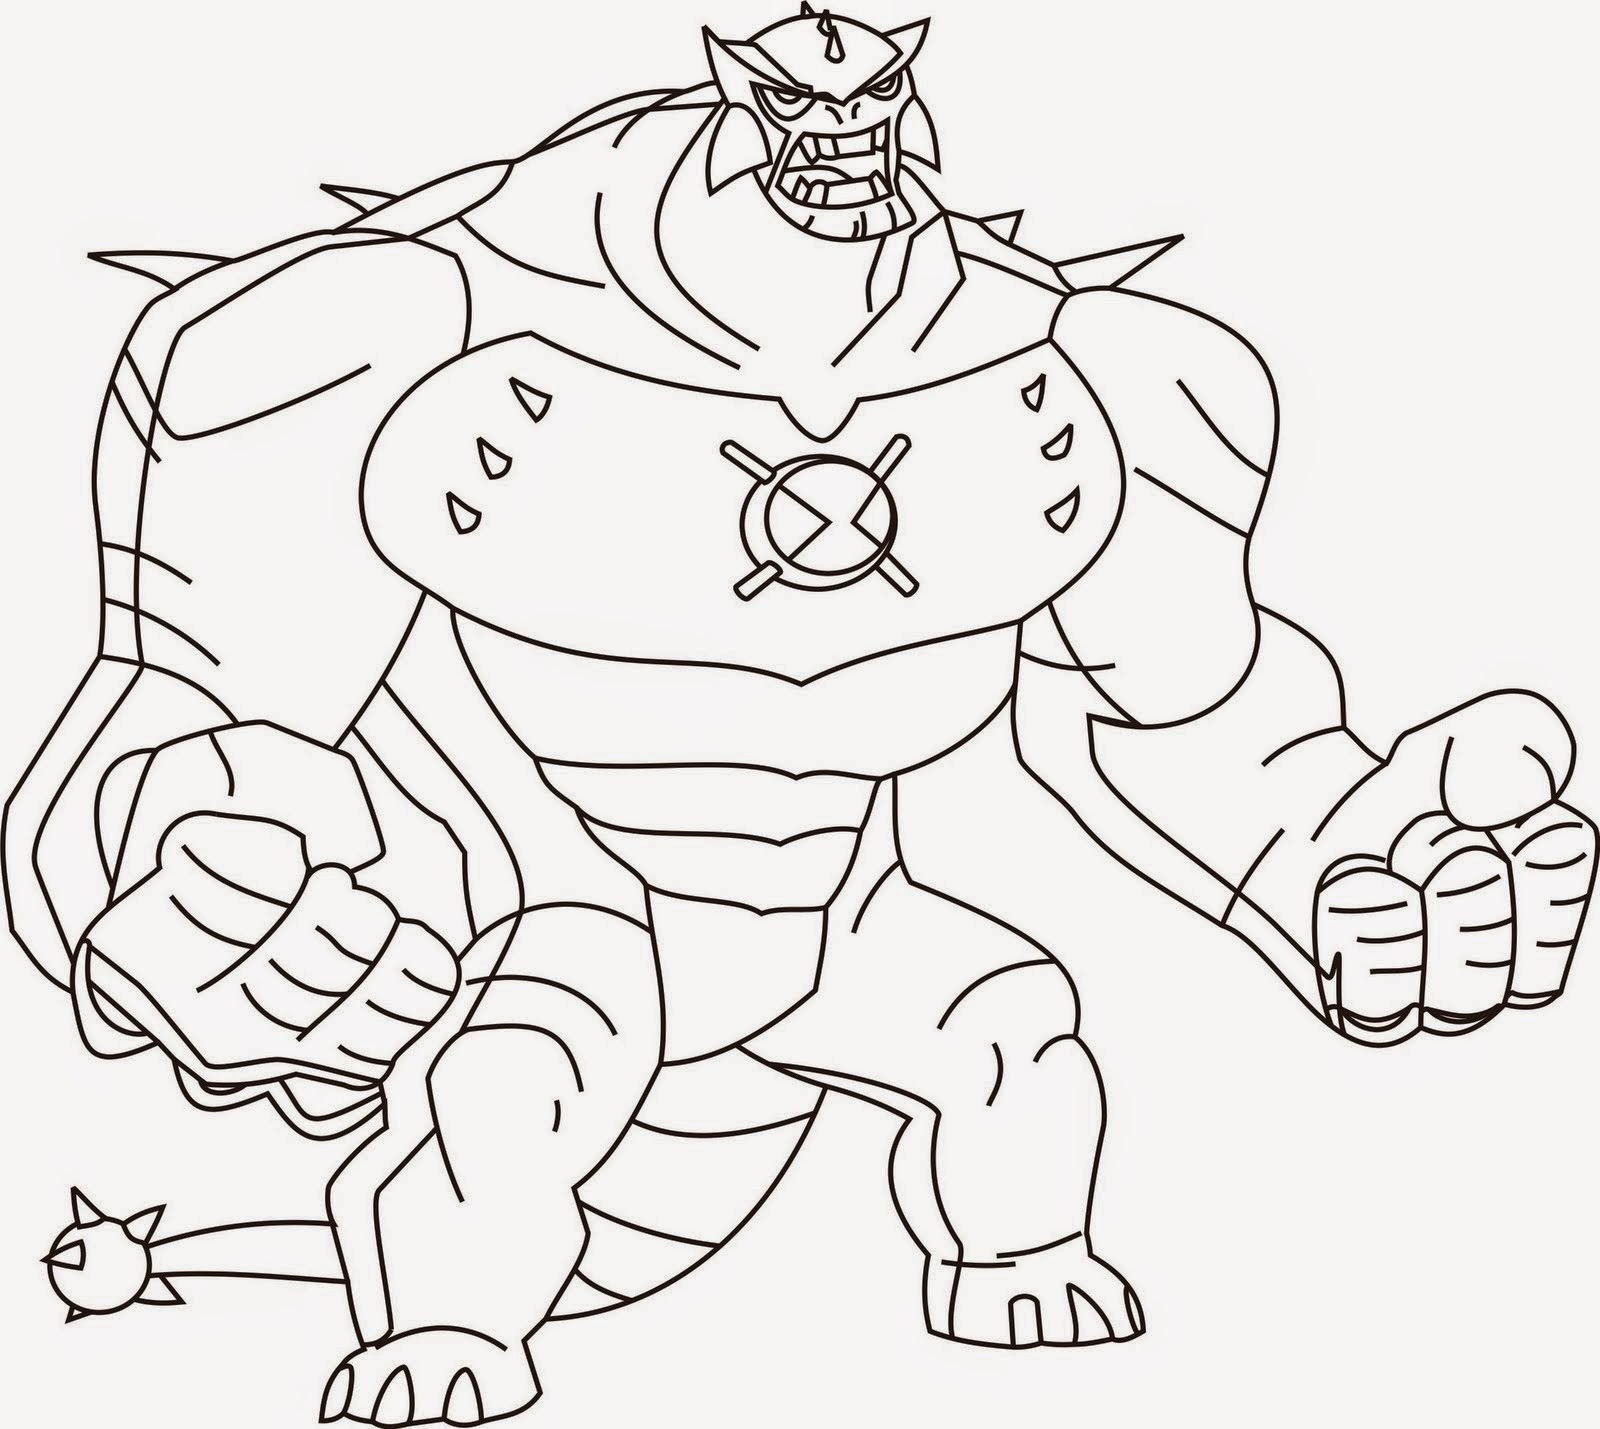 Ben 10 Coloring Drawing Free wallpaper